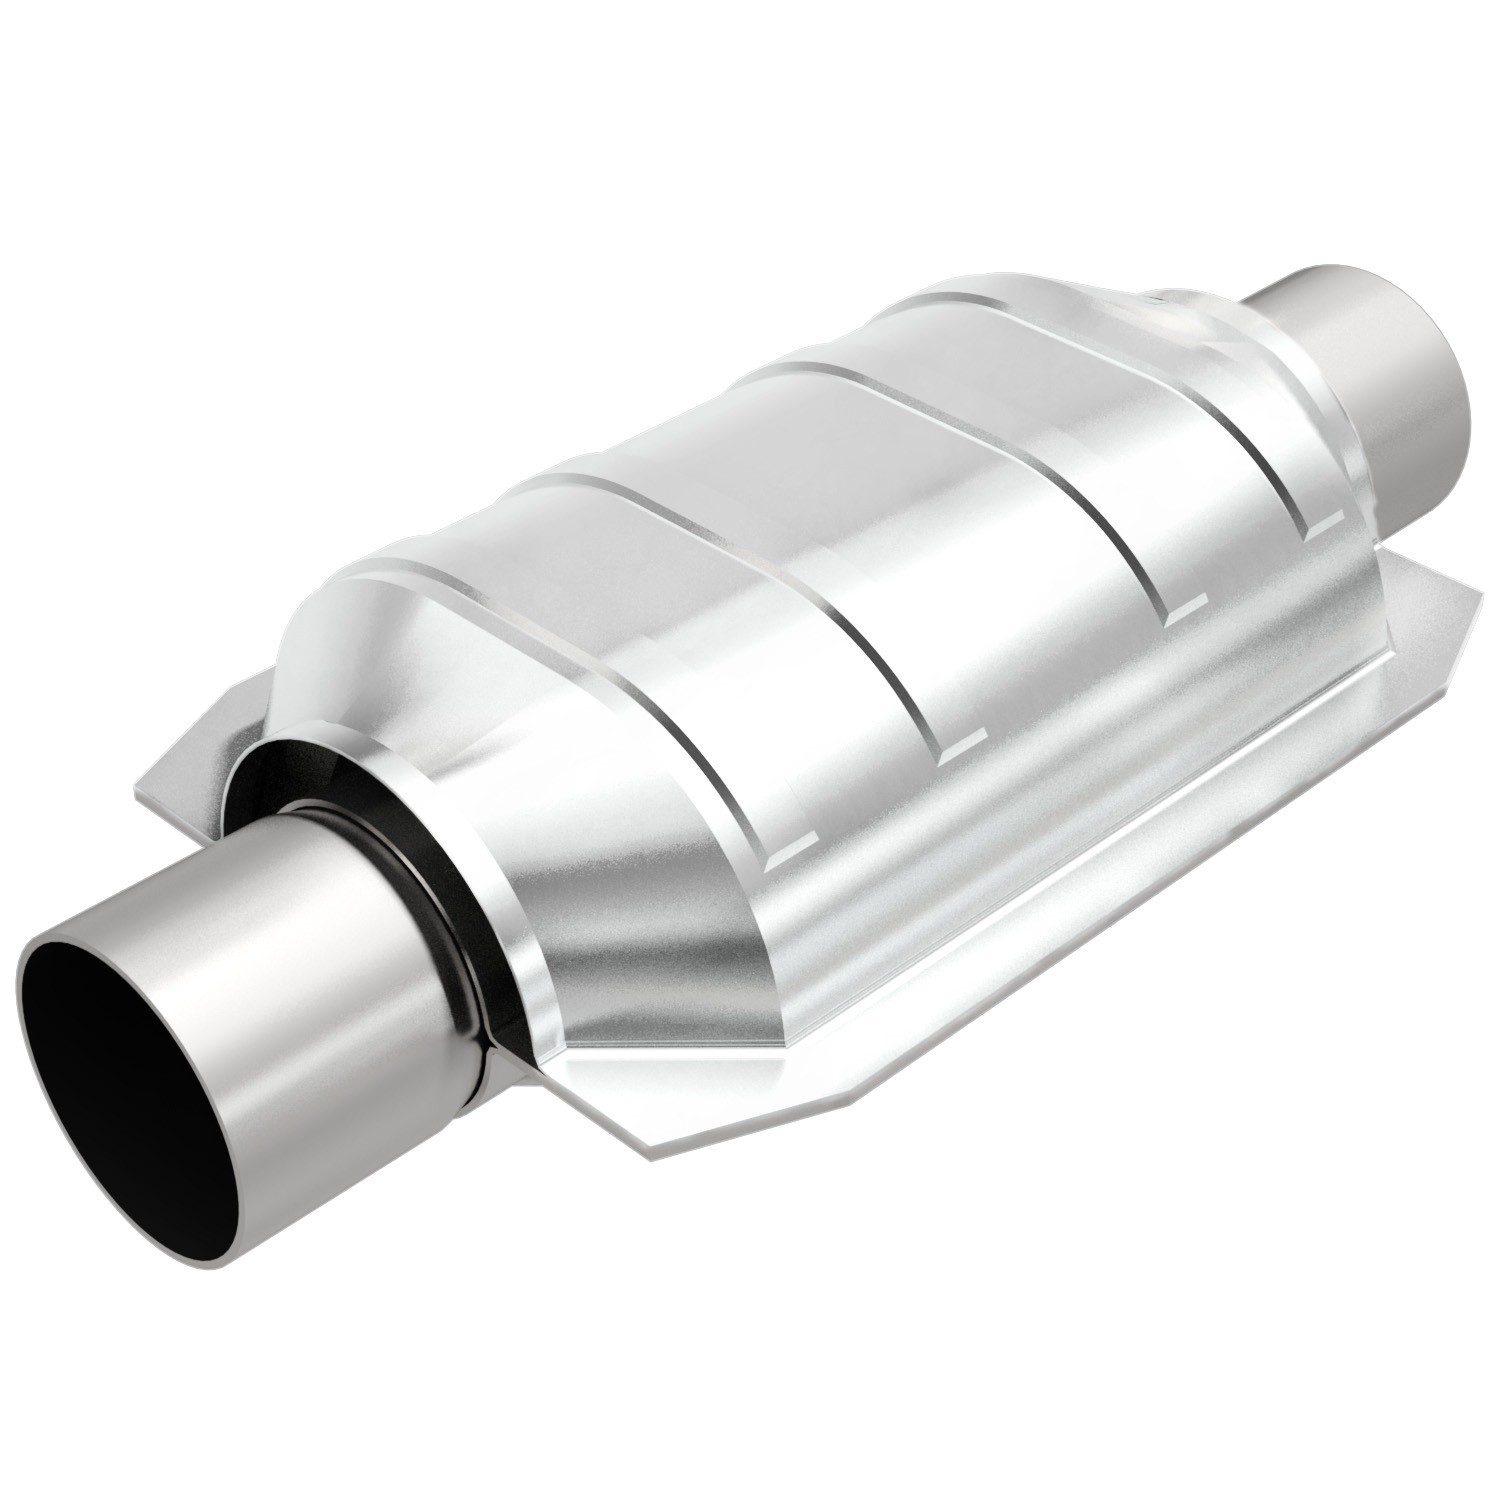 MagnaFlow Exhaust Products Catalytic Converter (33104)